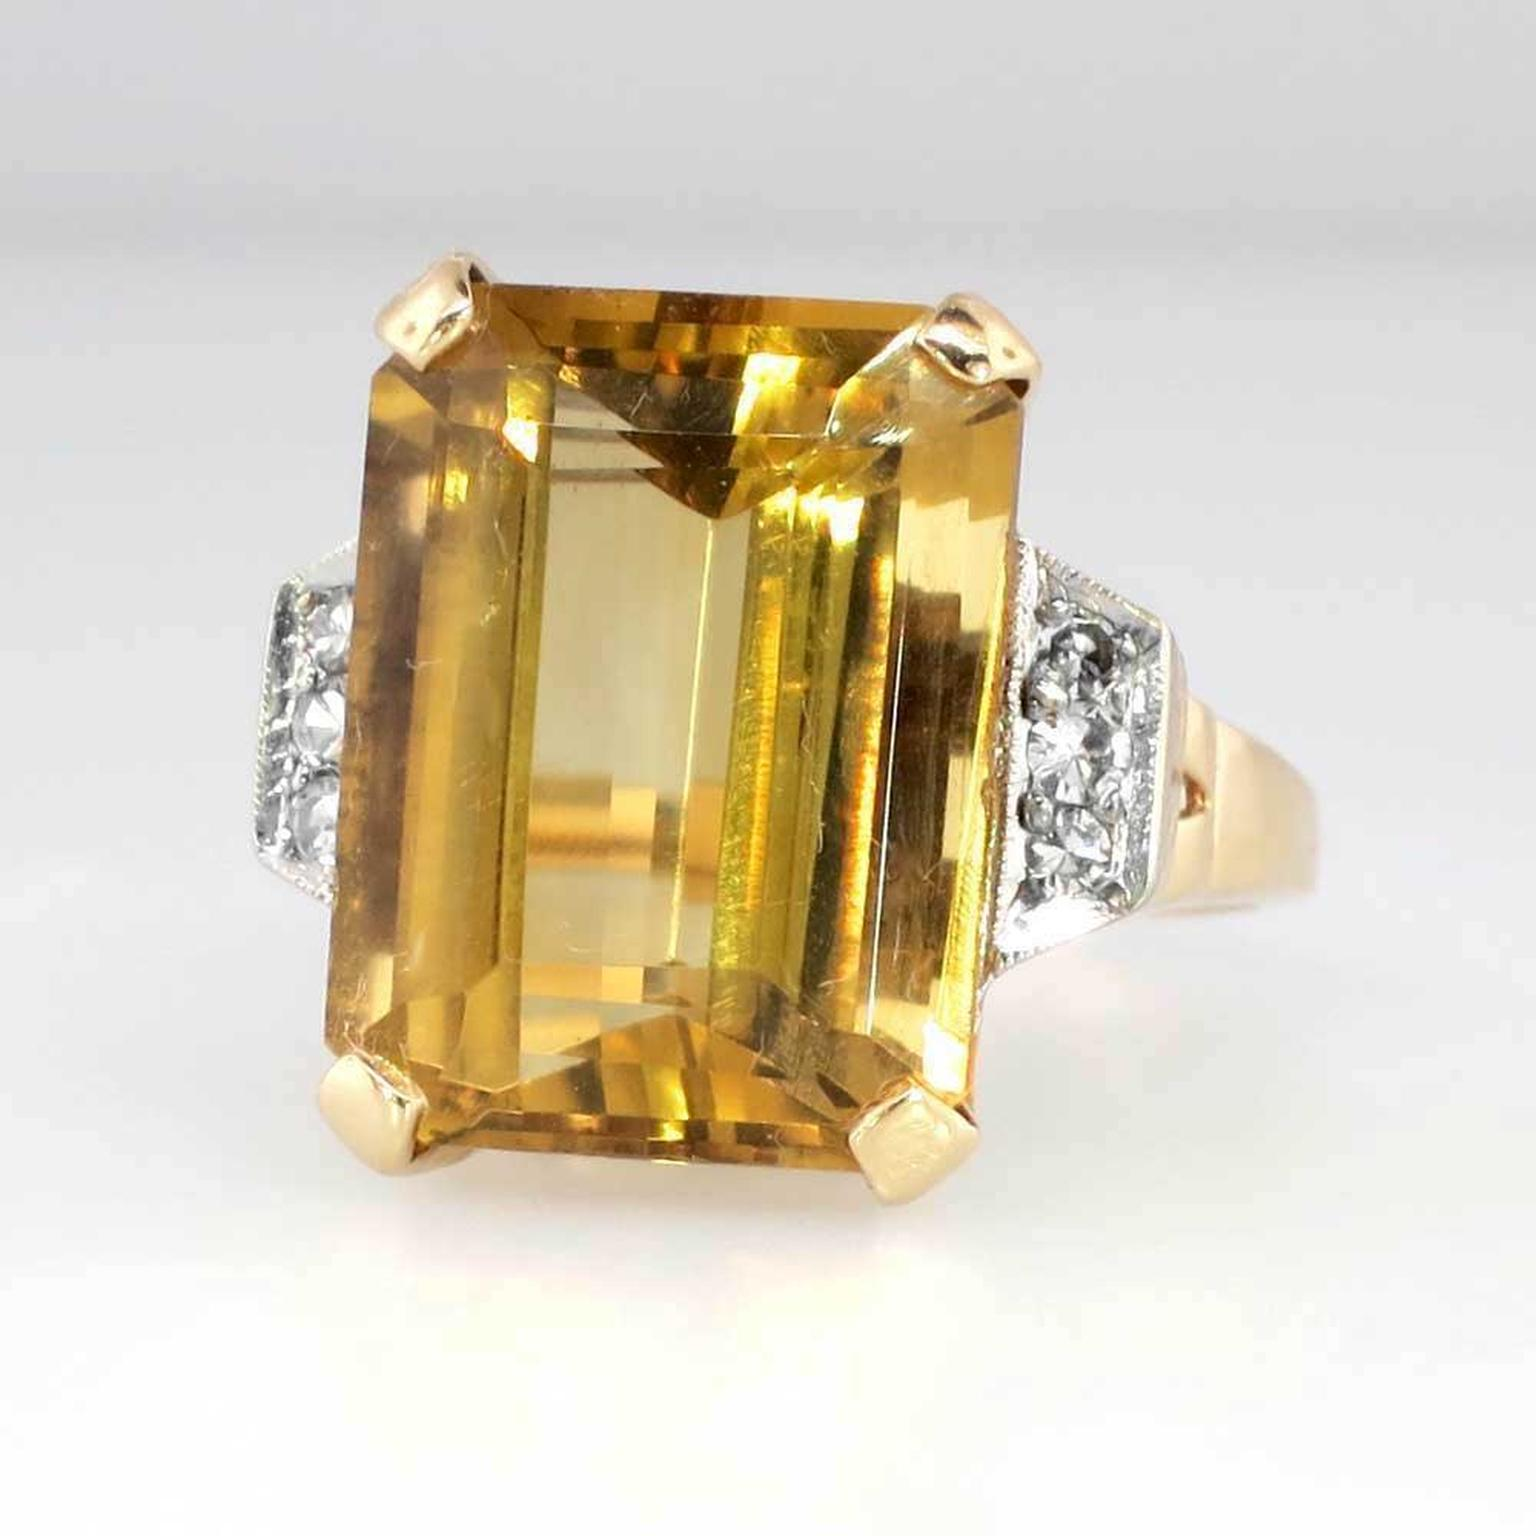 Jewelry Finds 1940s emerald-cut citrine cocktail ring